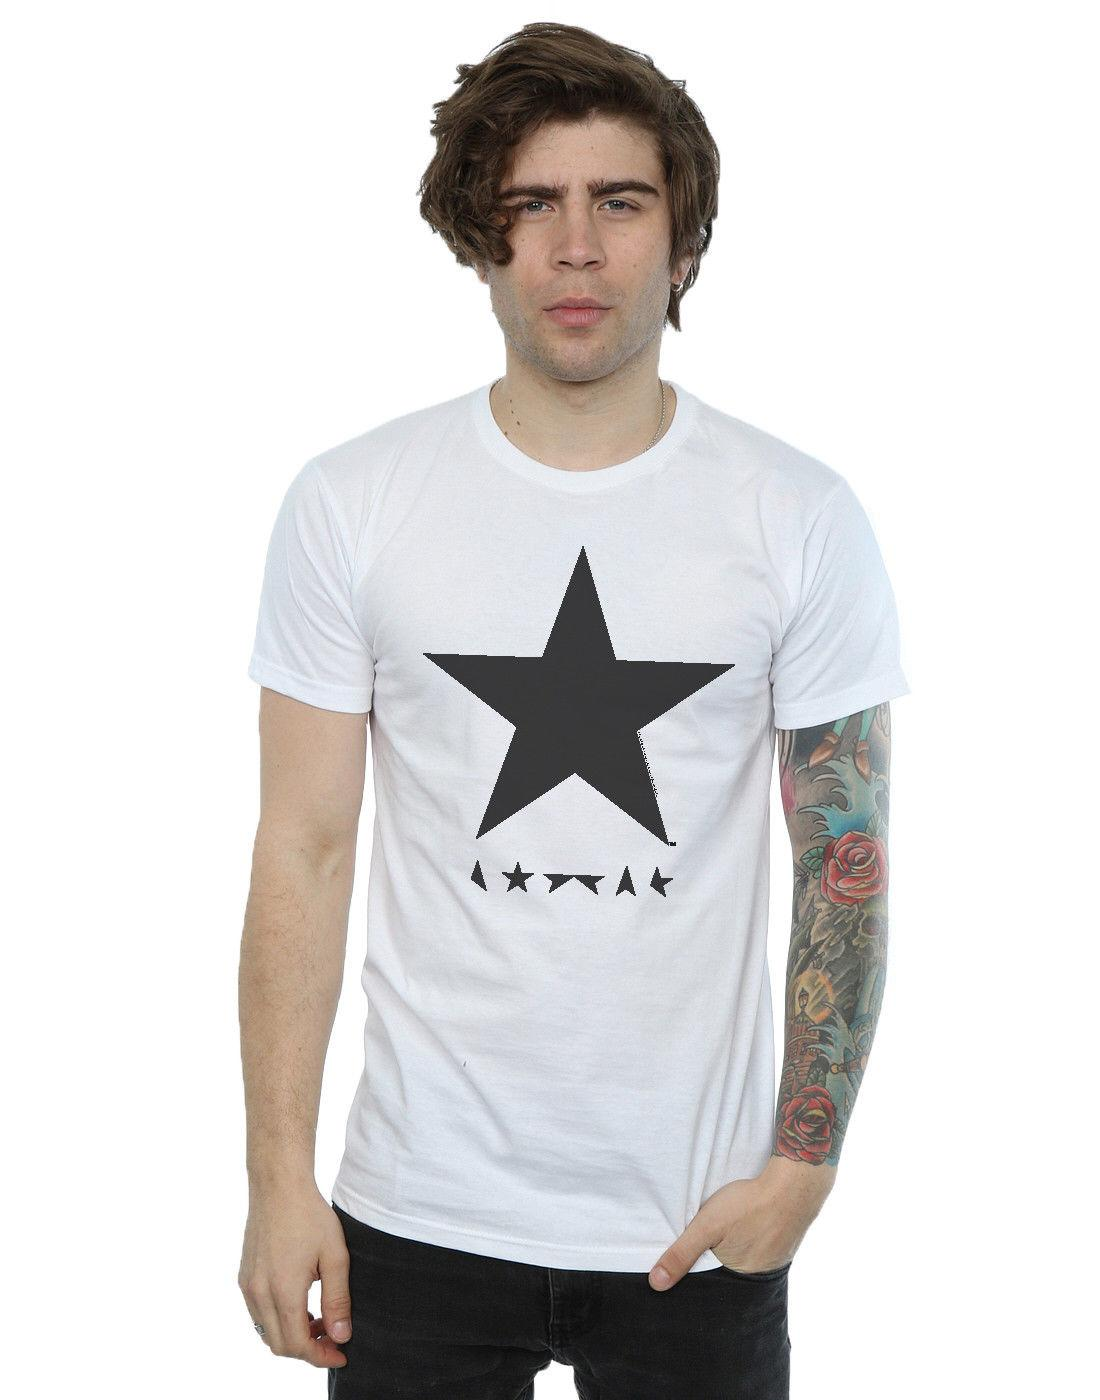 ecc49c5fa1 David Bowie Men S Star Logo T Shirt Streetwear Funny Print Clothing Mans T  Shirt Tops Tees Cheap Tee Shirts Funny Tees From Strong063